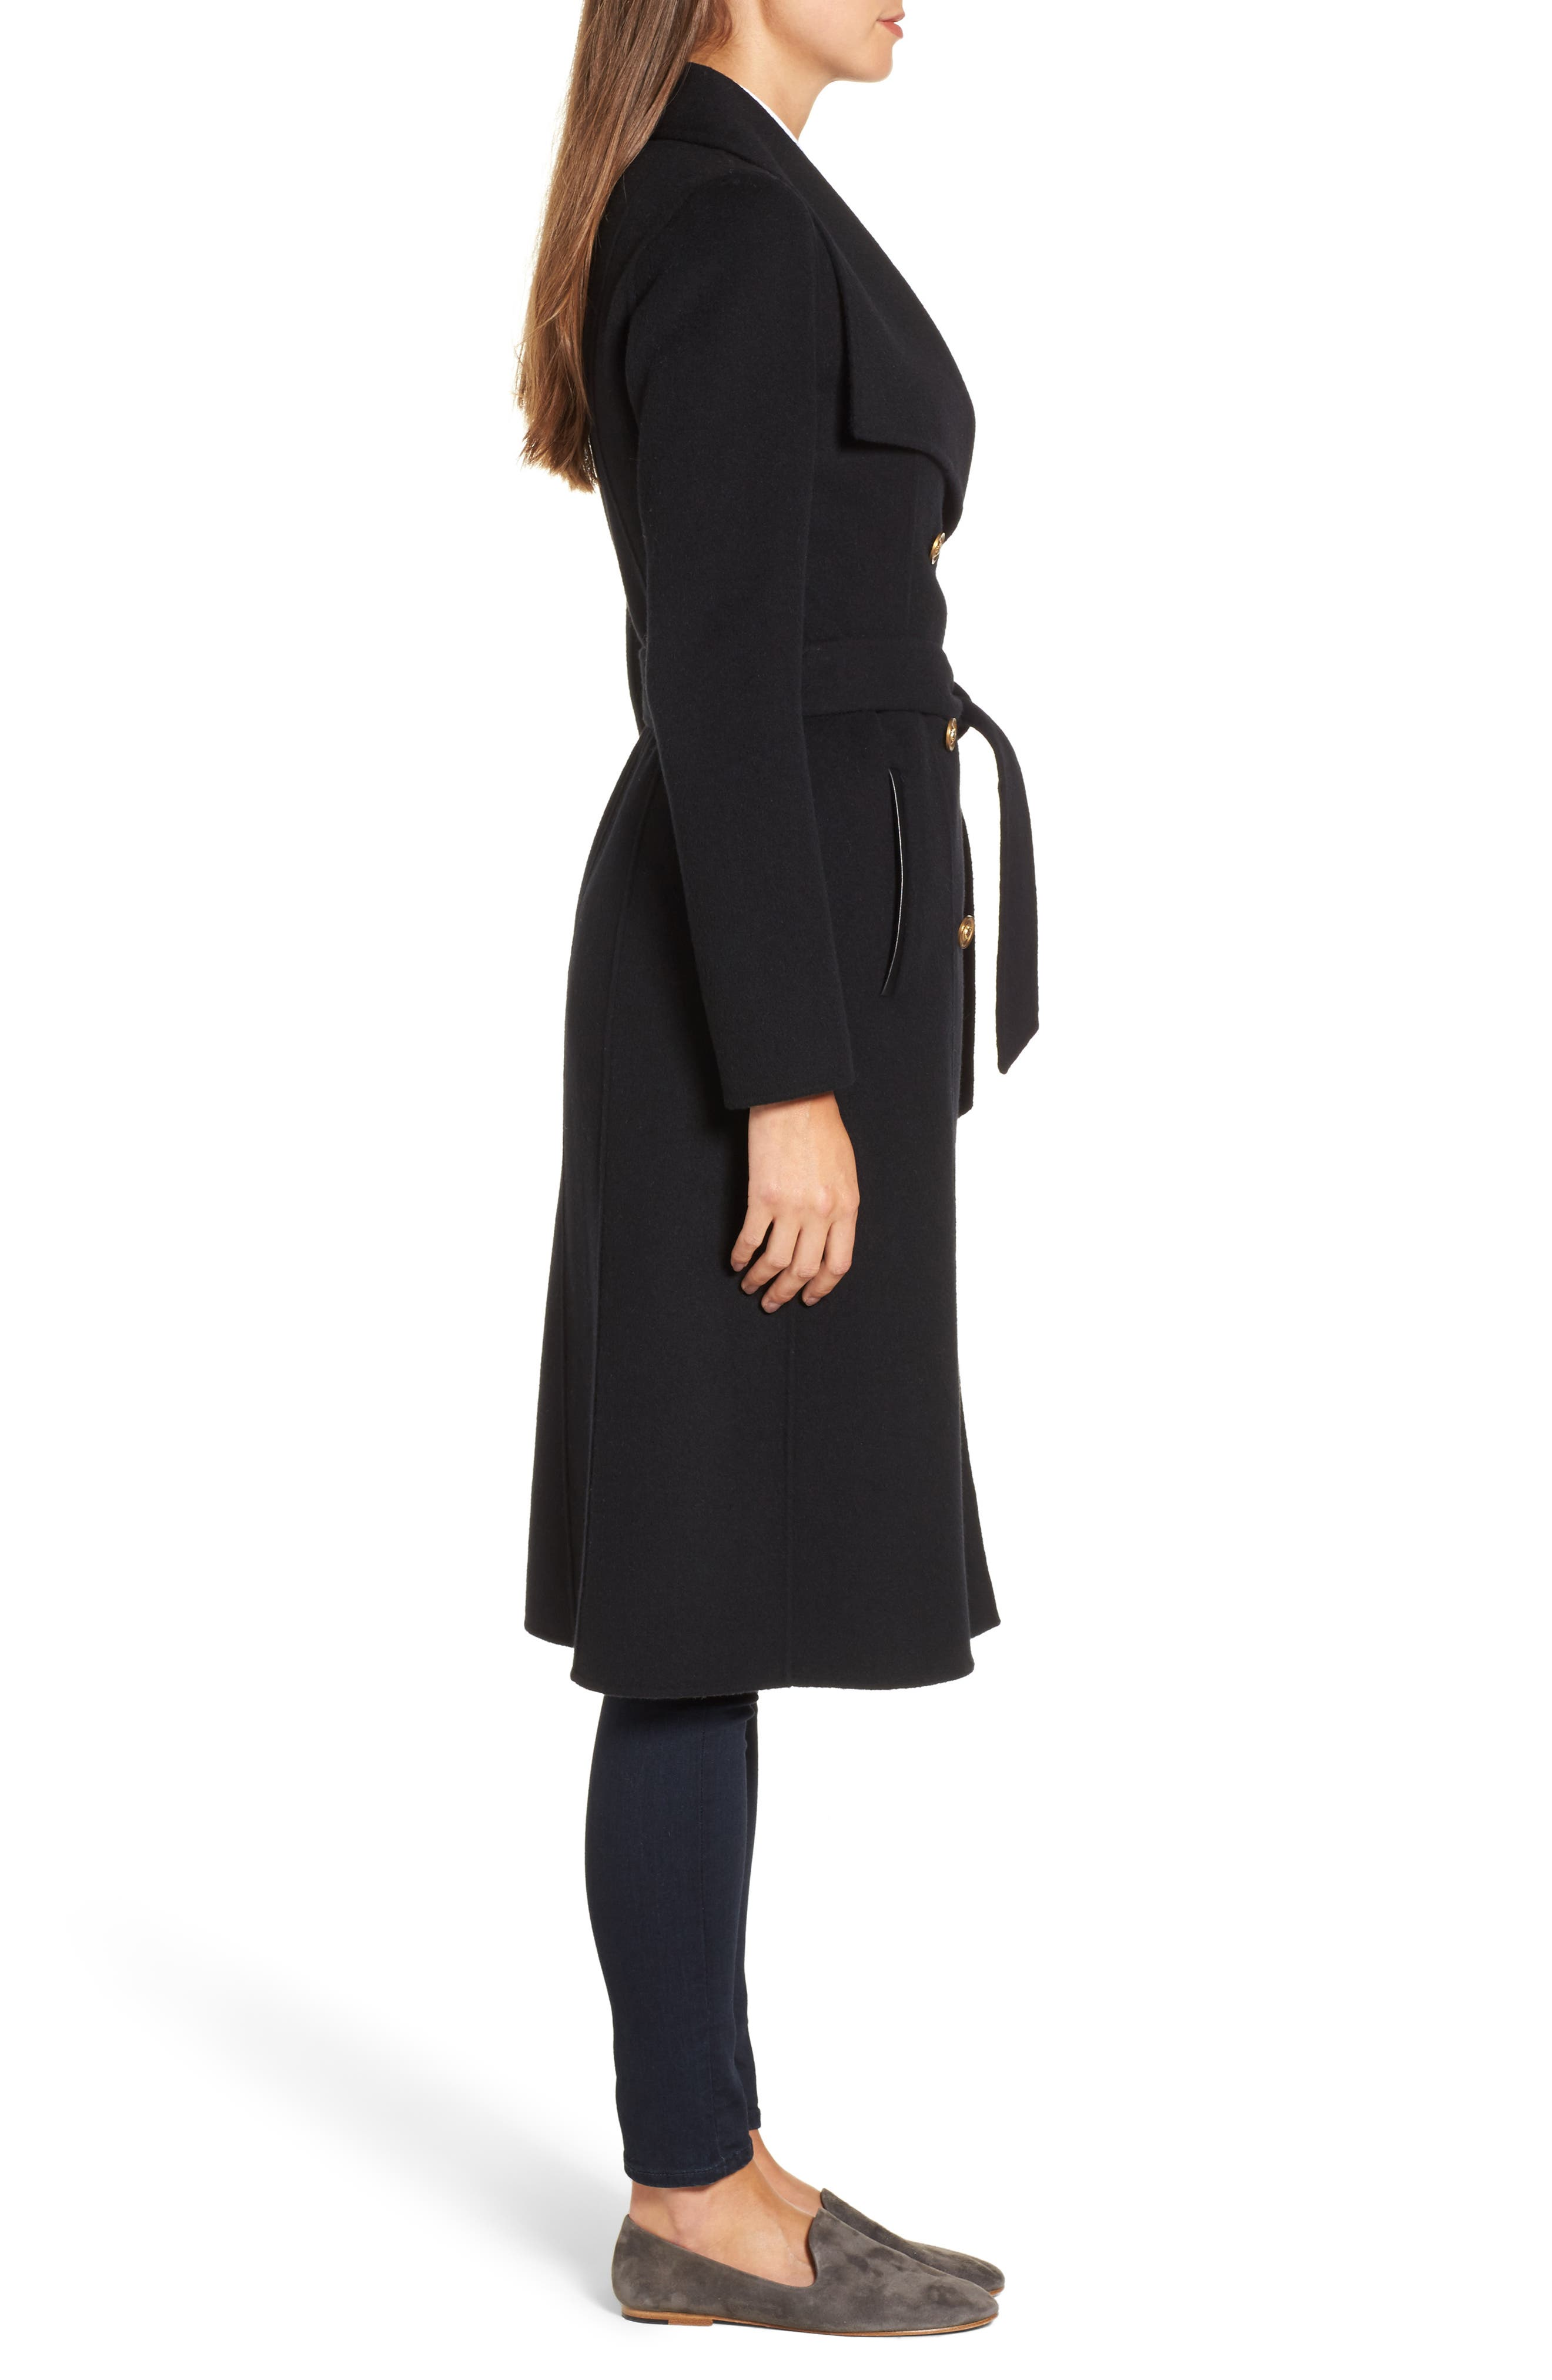 Norah-N Double Breasted Wool Blend Long Military Coat,                             Alternate thumbnail 3, color,                             001